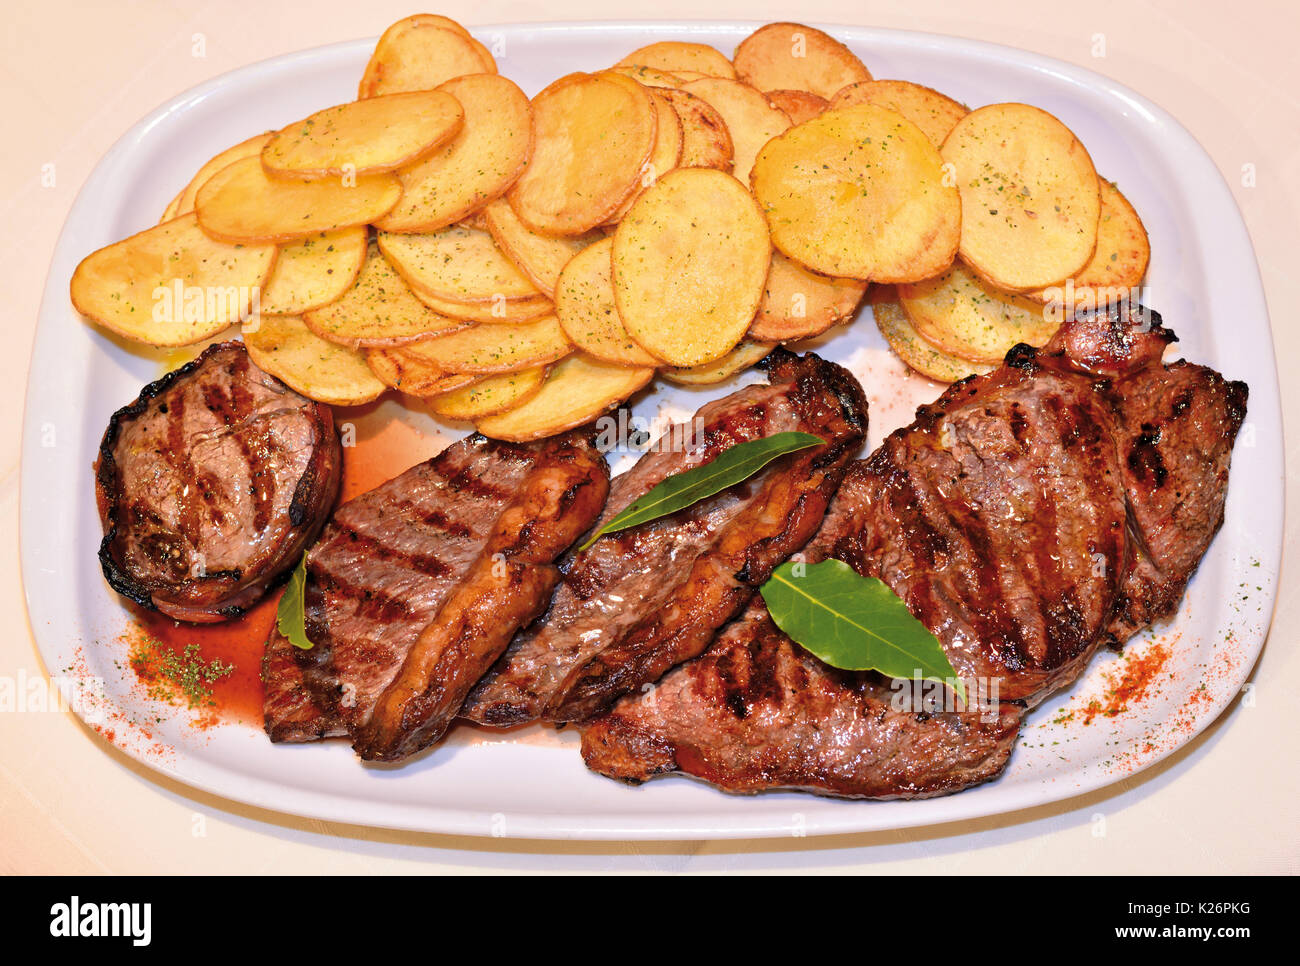 Plate with fried potatoes and grilled meat - Stock Image